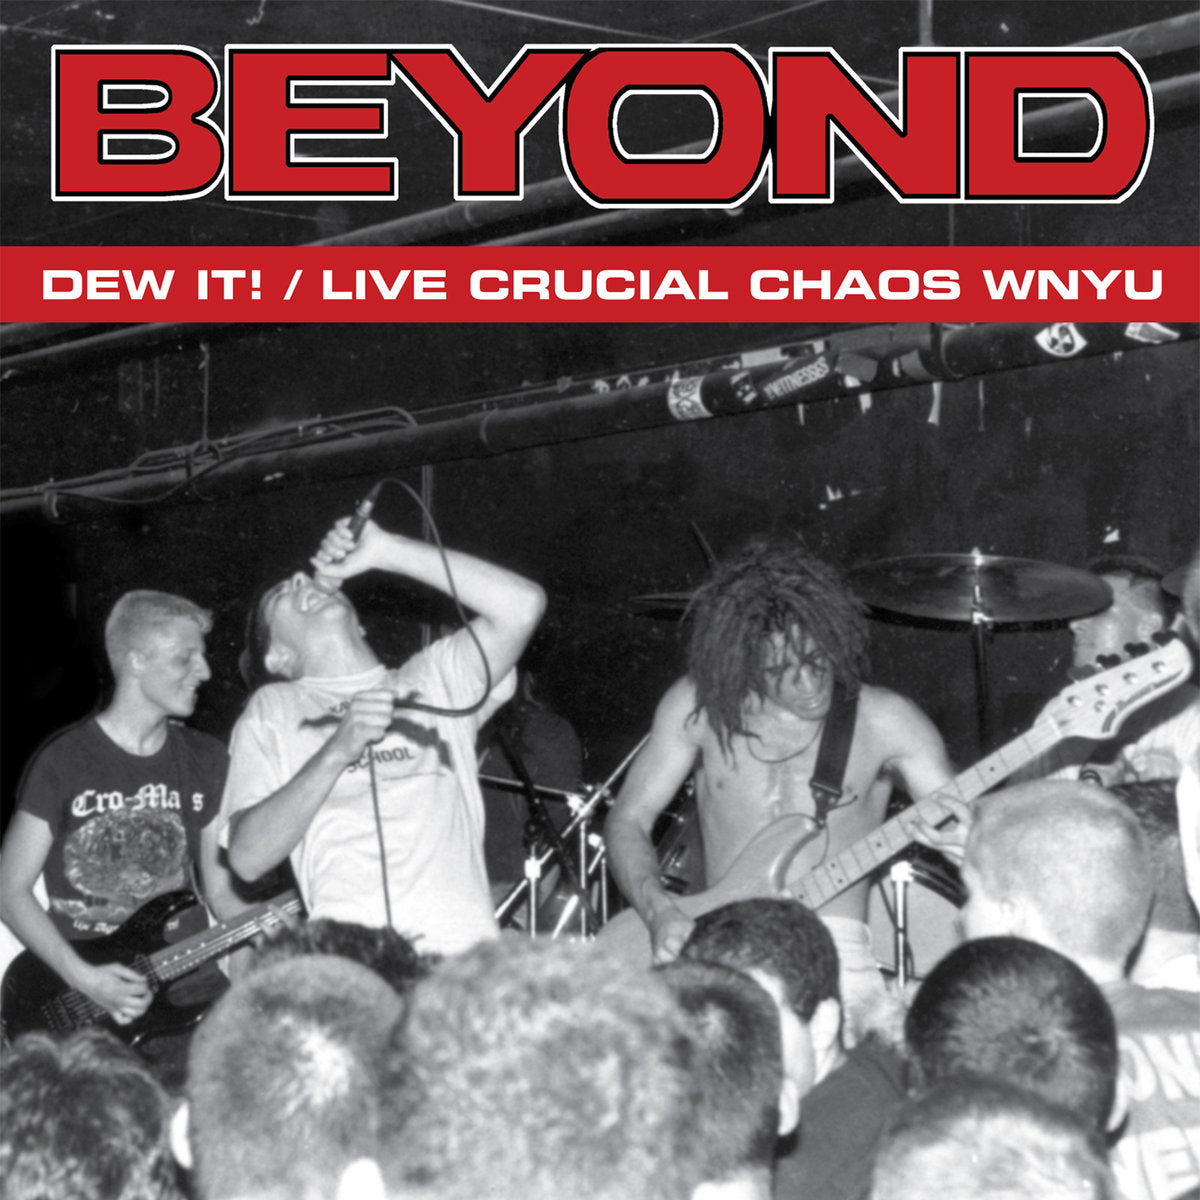 BEYOND 'Dew It! / Live Crucial Chaos WNYU'